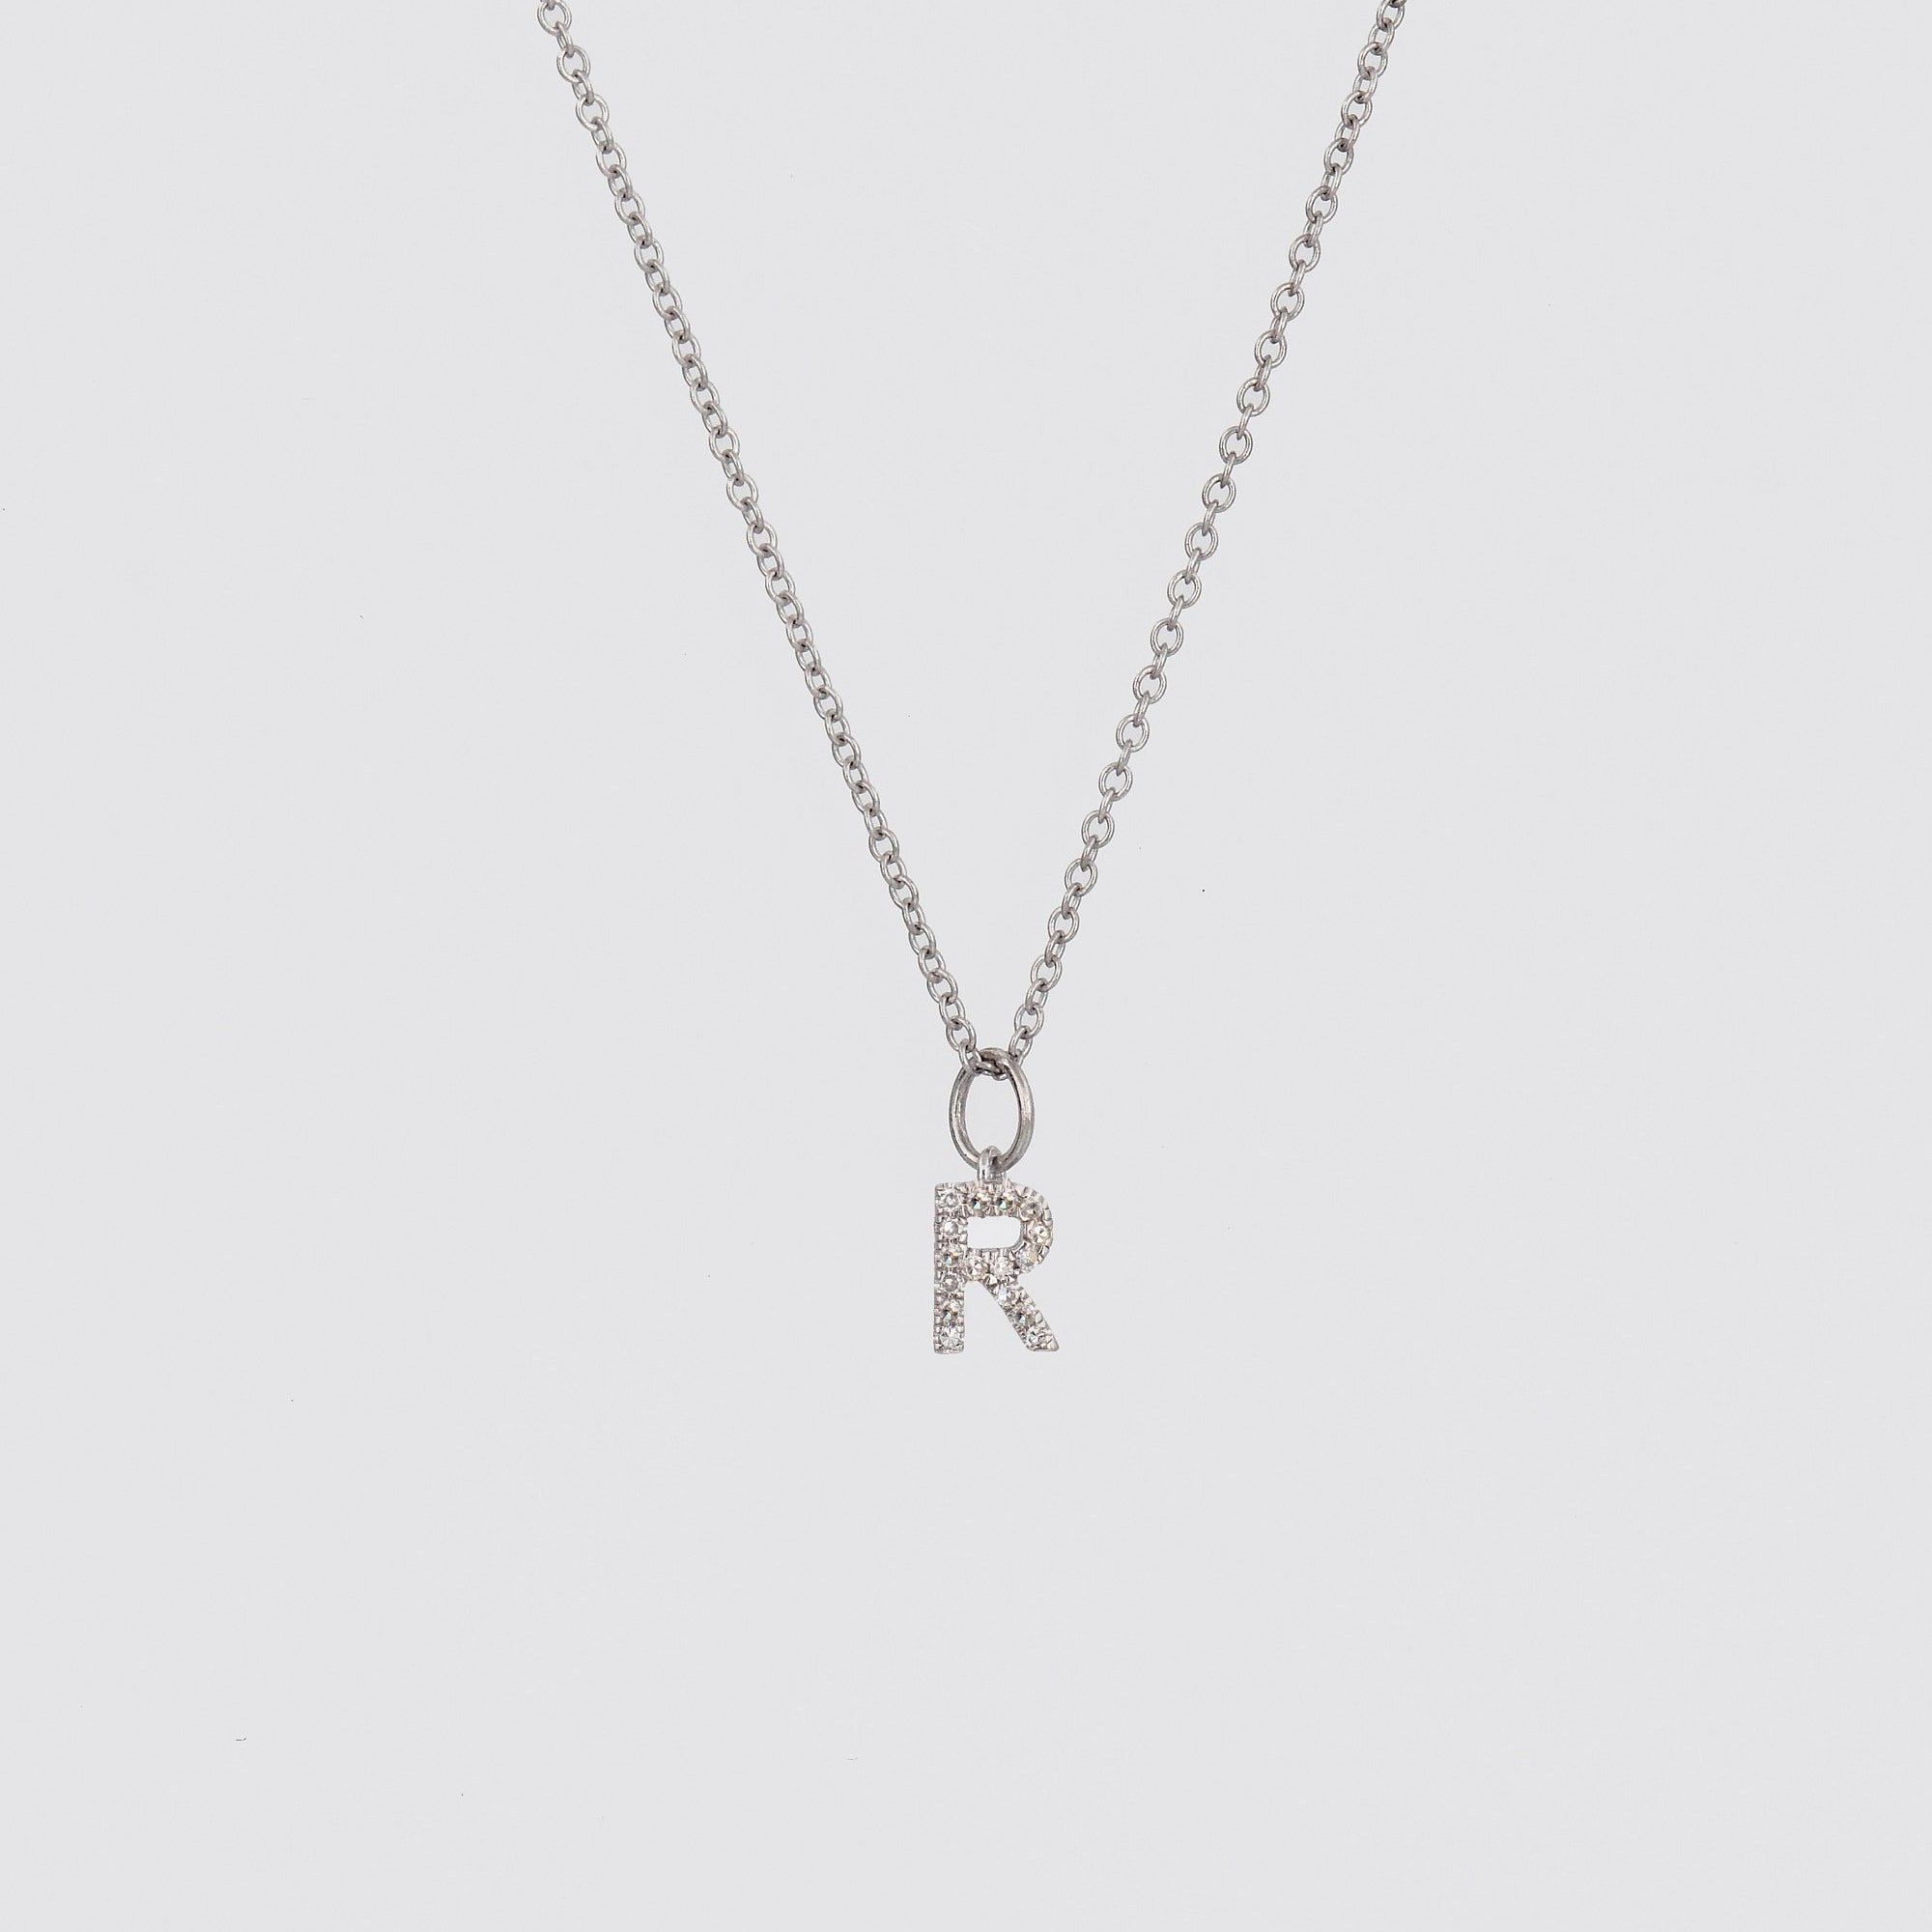 14k White Gold Initial Letter necklace, Pave Initial Necklace